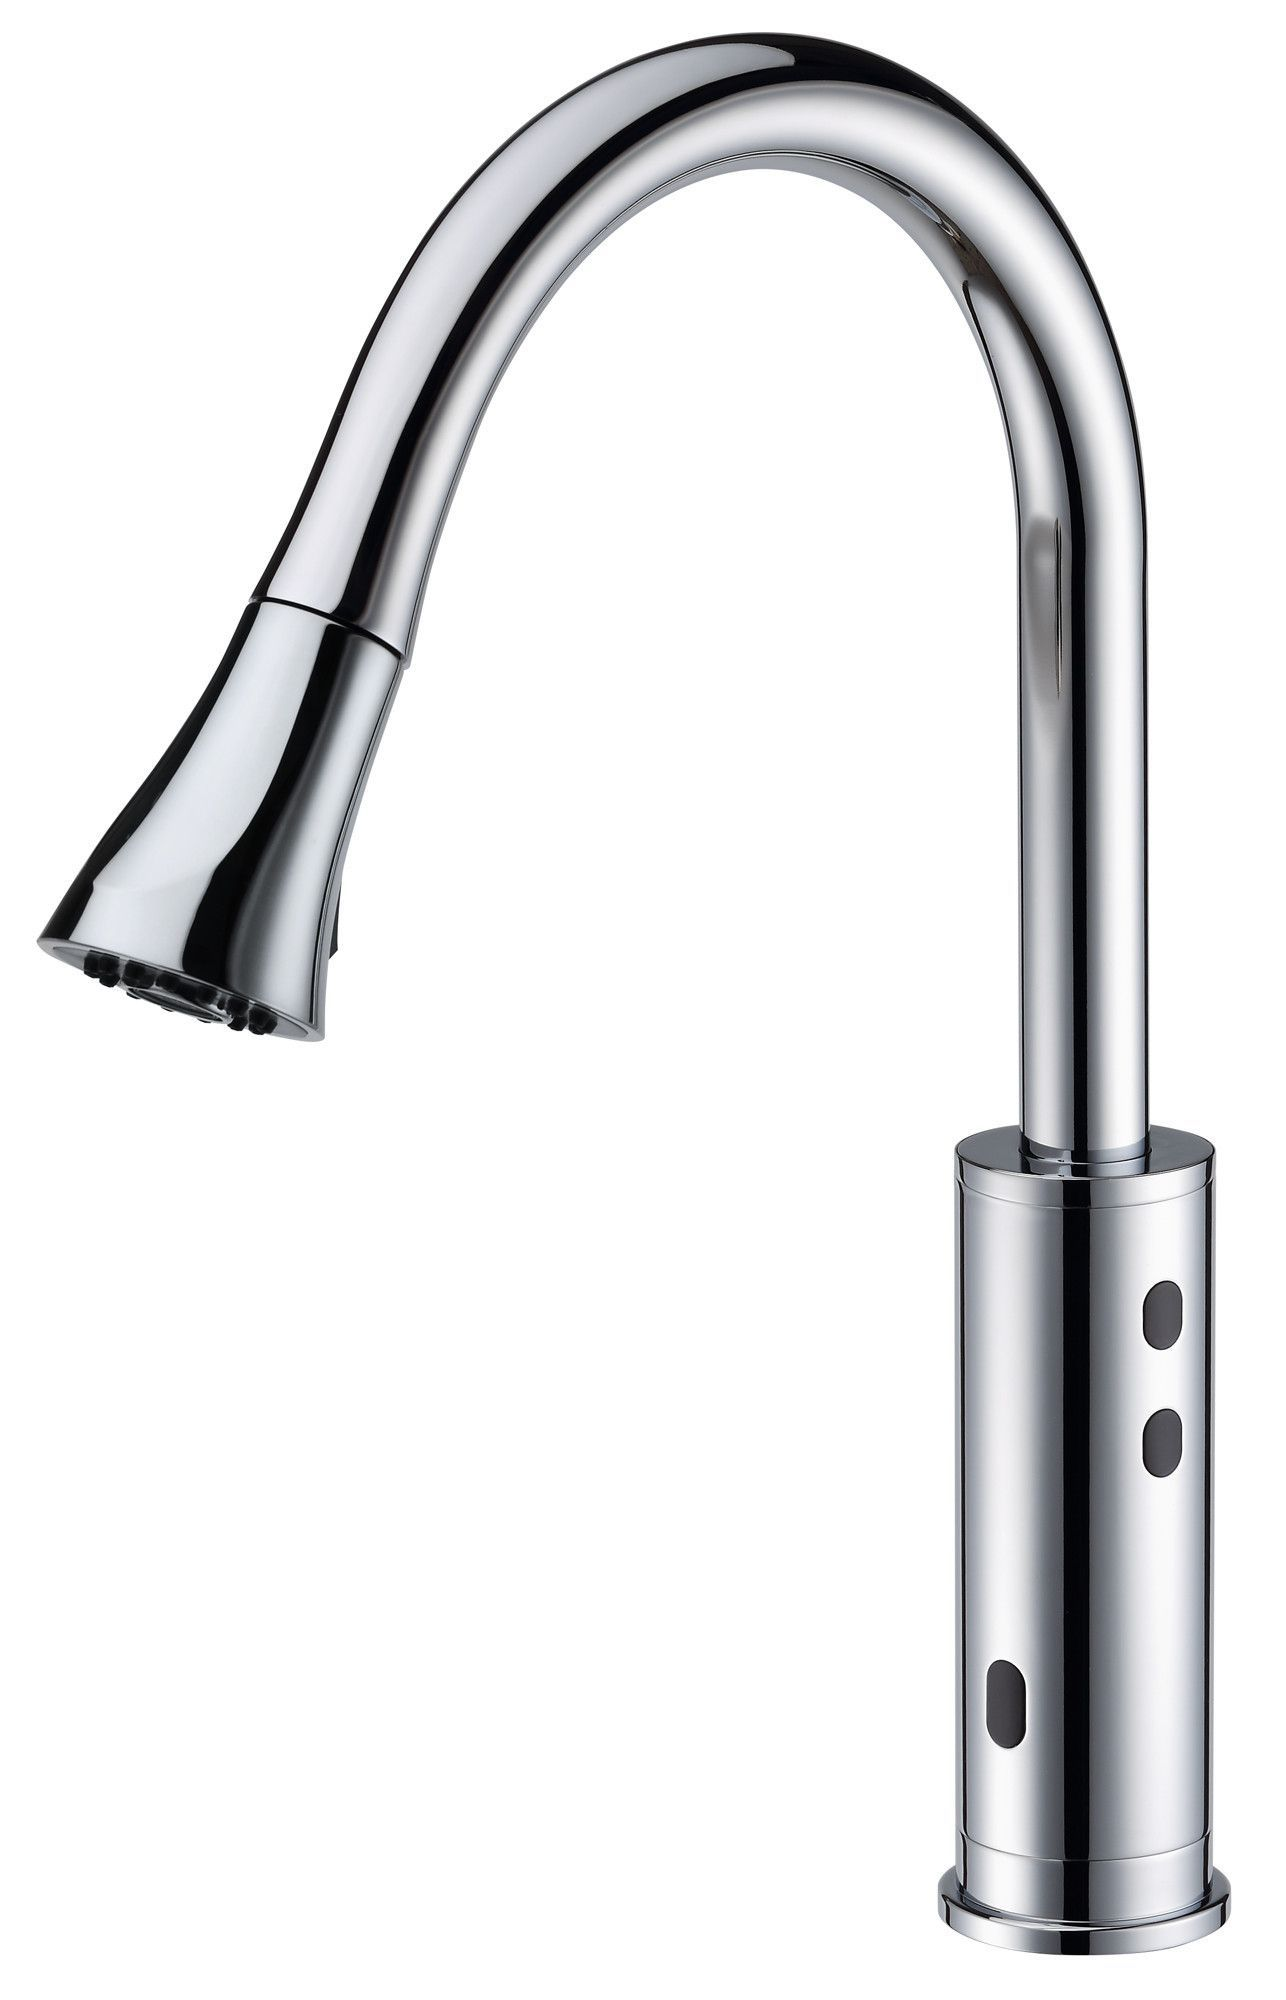 Cinaton 2201 Kitchen Faucet In Brushed Nickel Finish